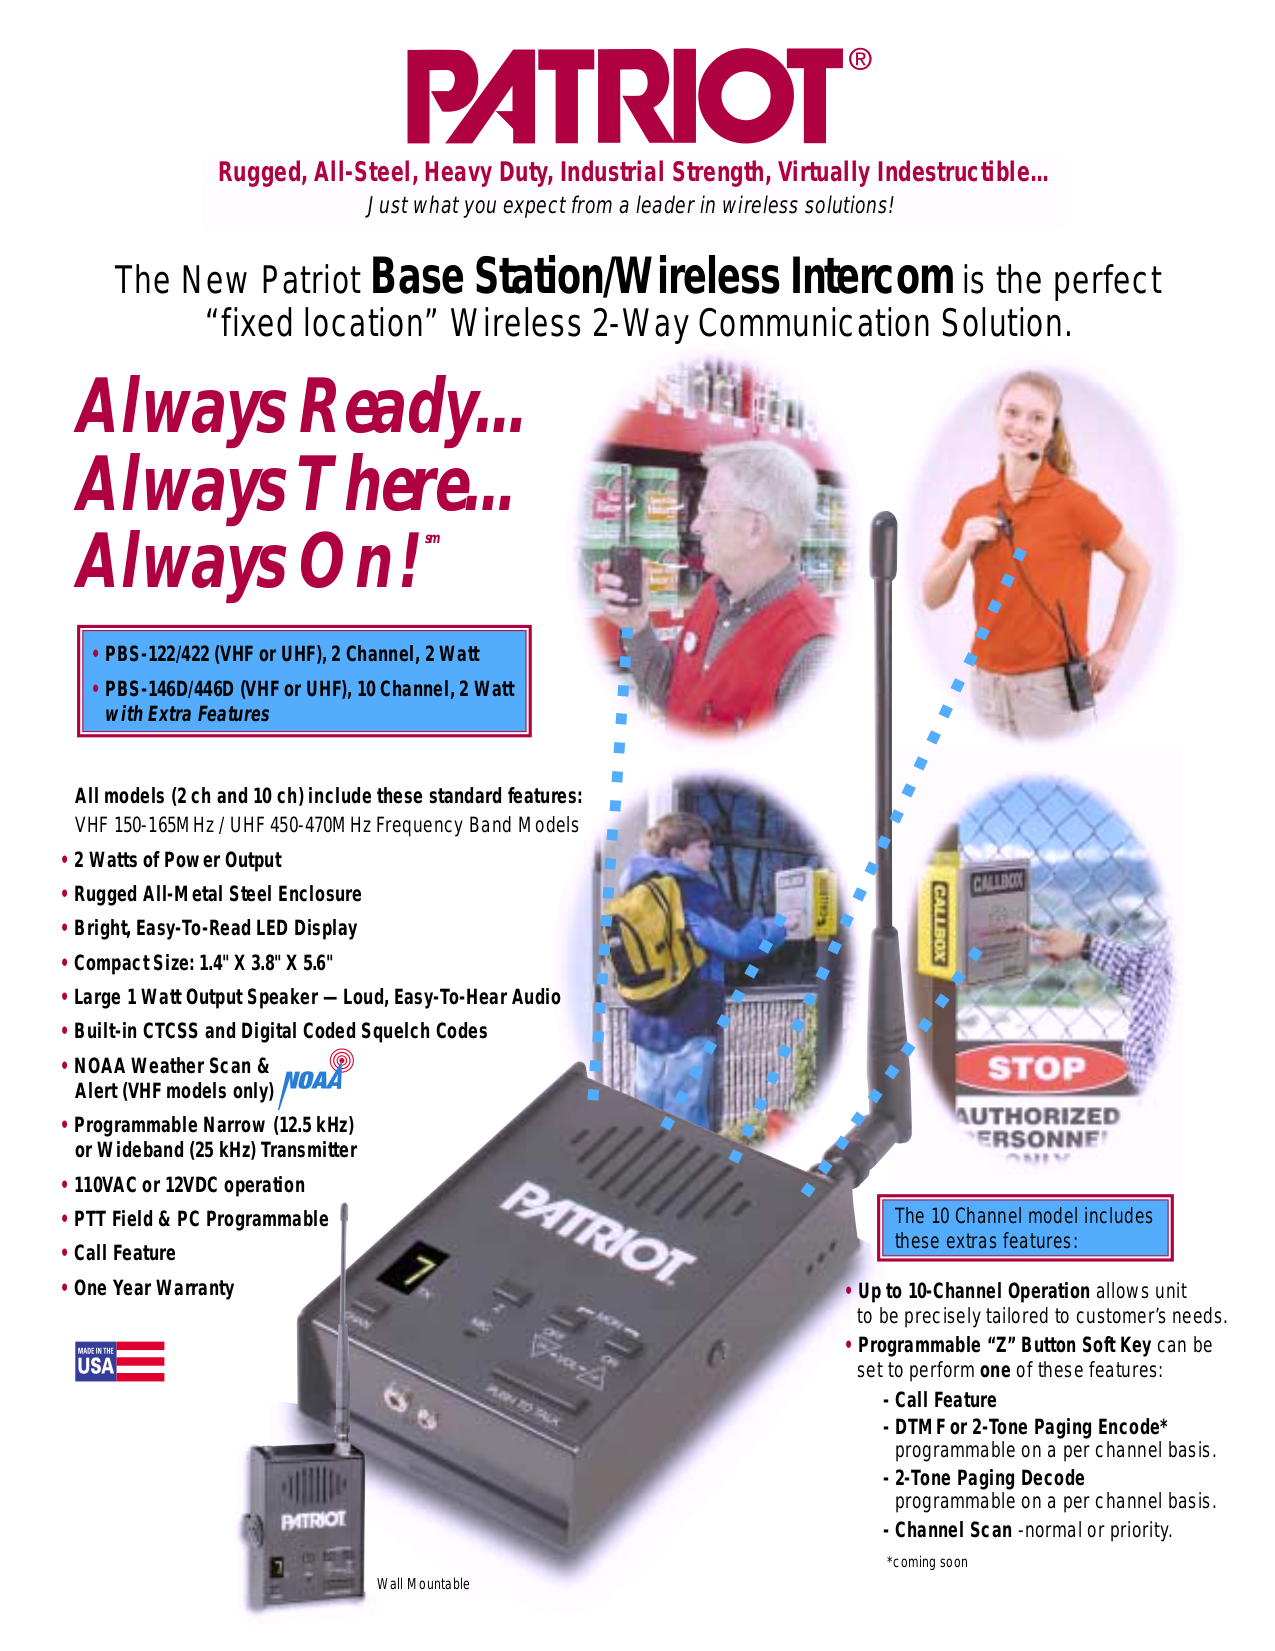 pdf for Ritron Other Patriot PBS-146D CANADA Base Stations manual